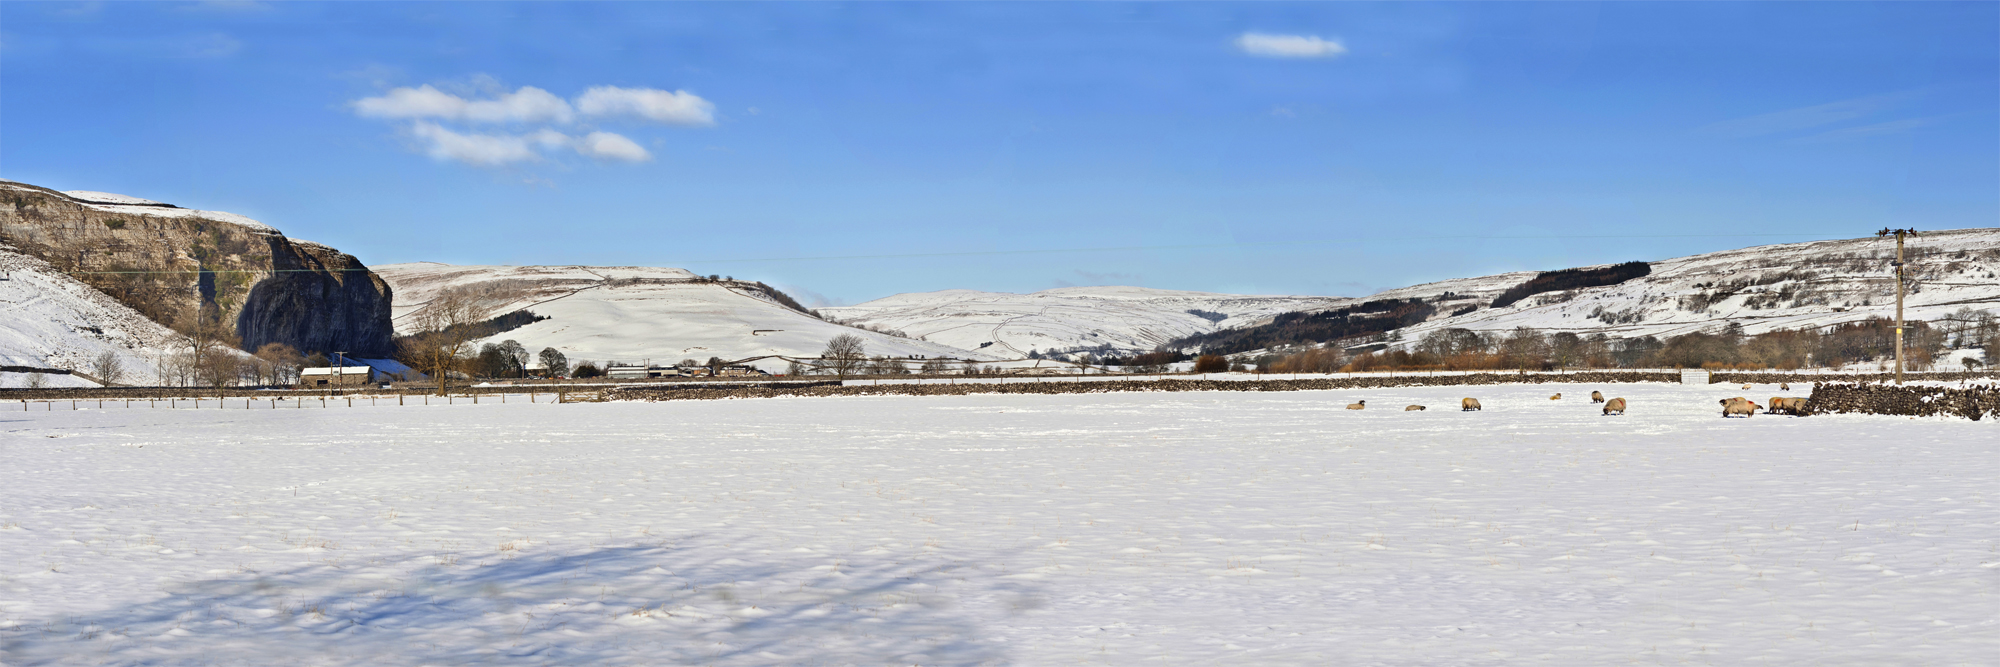 Upper Wharfedale in Snow 2000px @ 72dpi